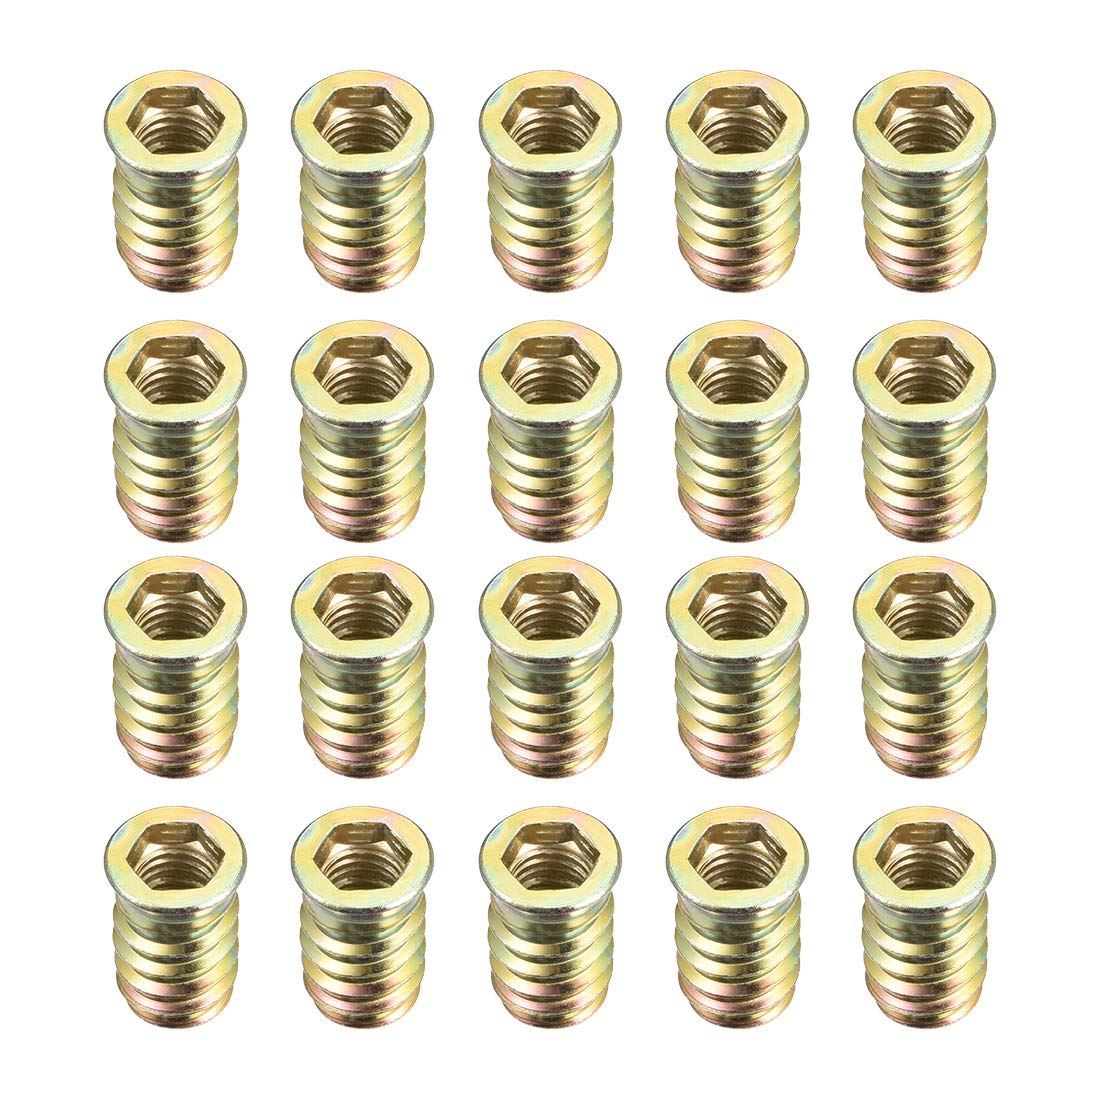 sourcing map Wood Furniture M8 x 30 mm Thread Insert Nut Interface Hexagon Socket Drive Pack of 50